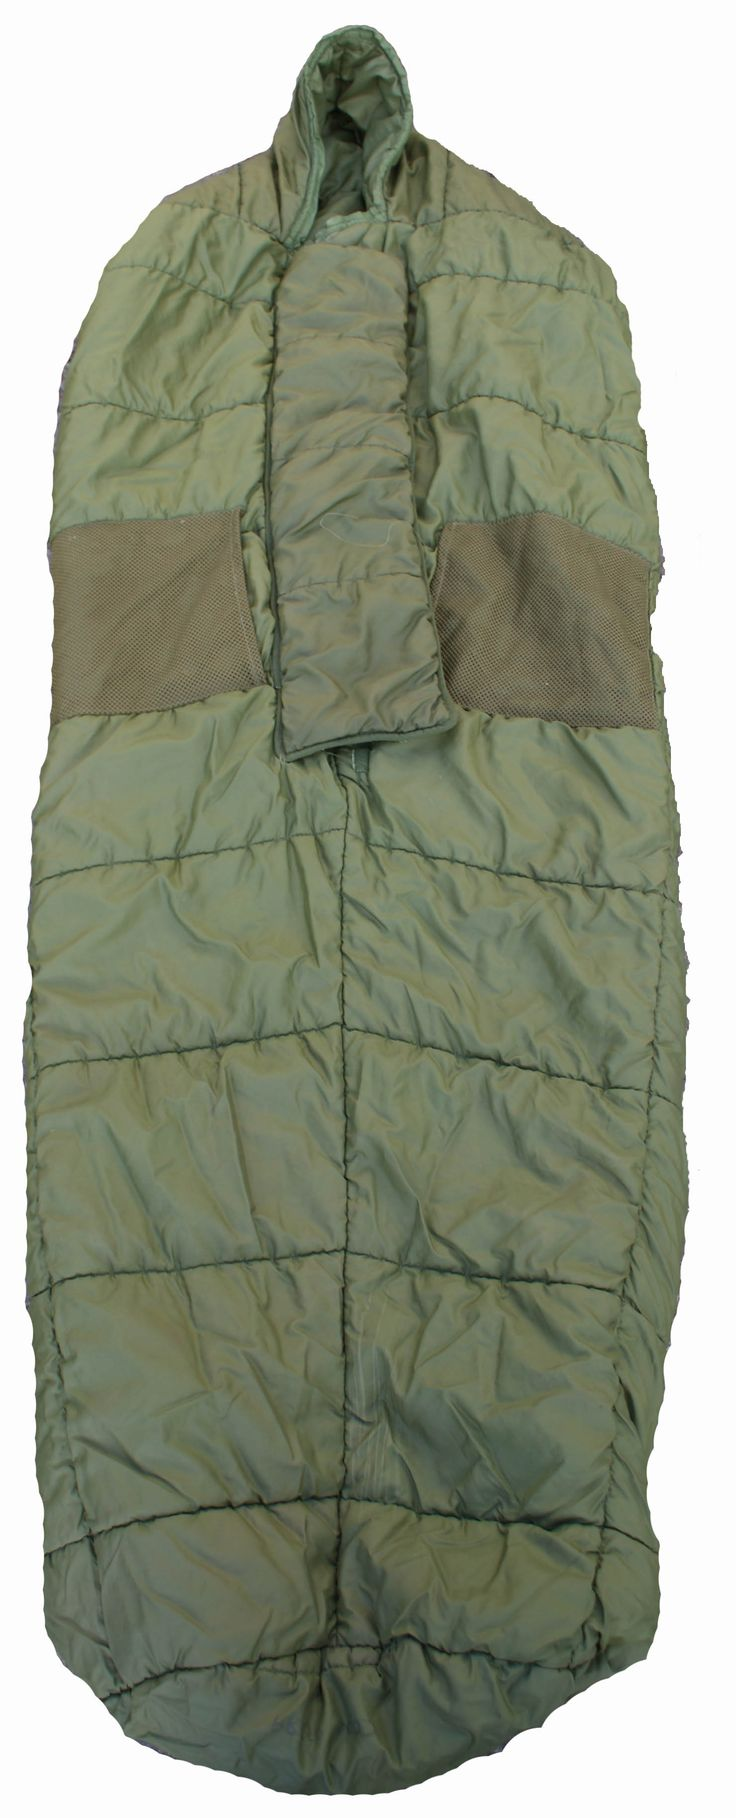 the home of army surplus 278 best sleeping bags     blankets     cots     hammocks     mats      rh   pinterest